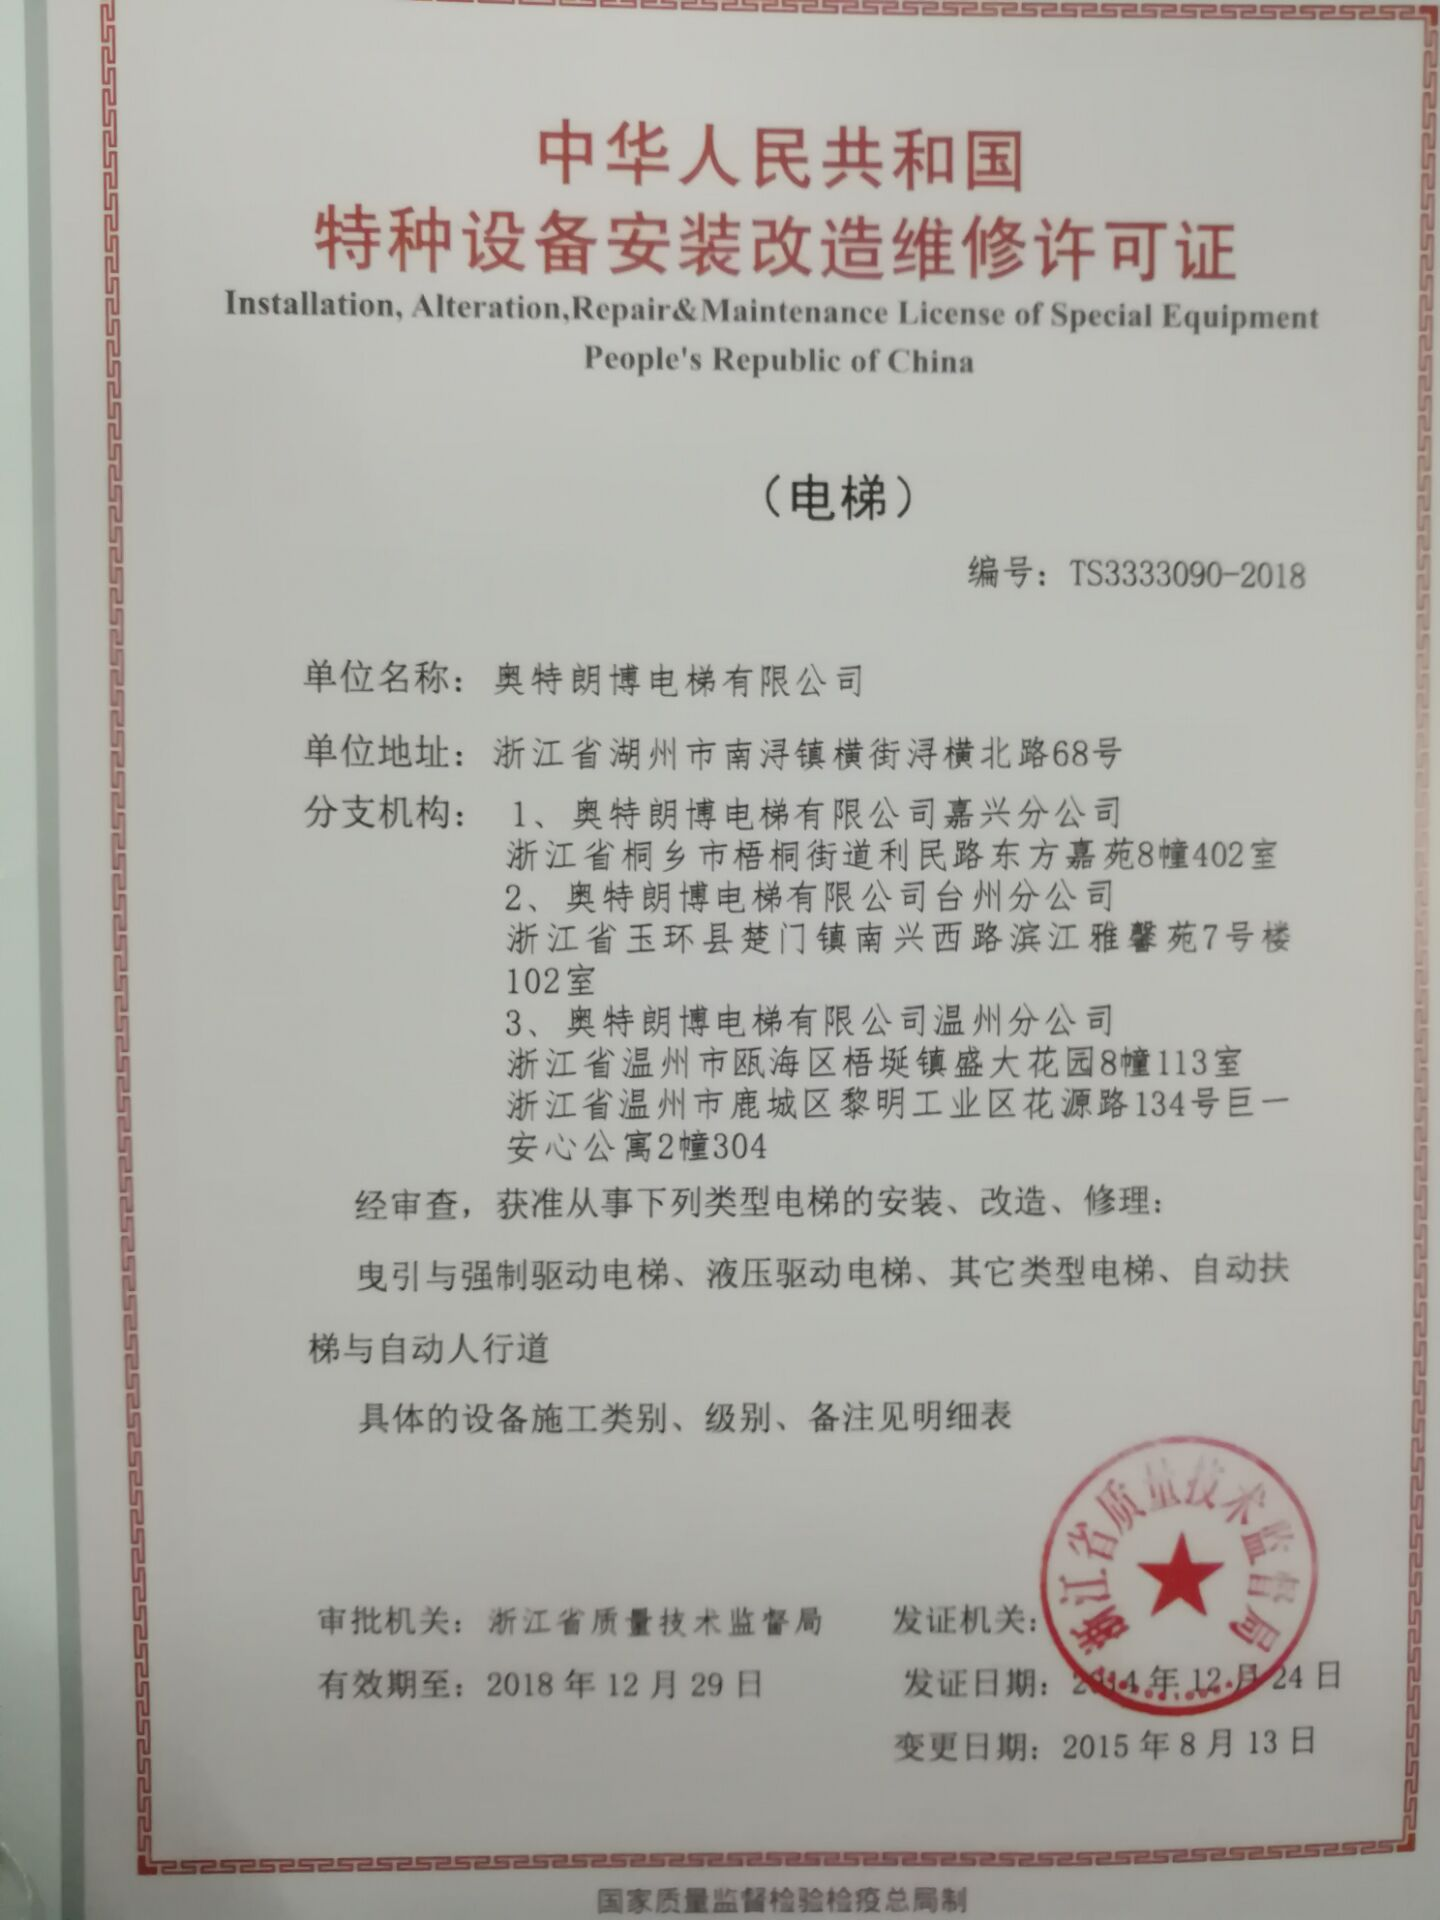 Installation, Alteration, Repair&Maintenance Lincence of Special Equipment People's Republic of China